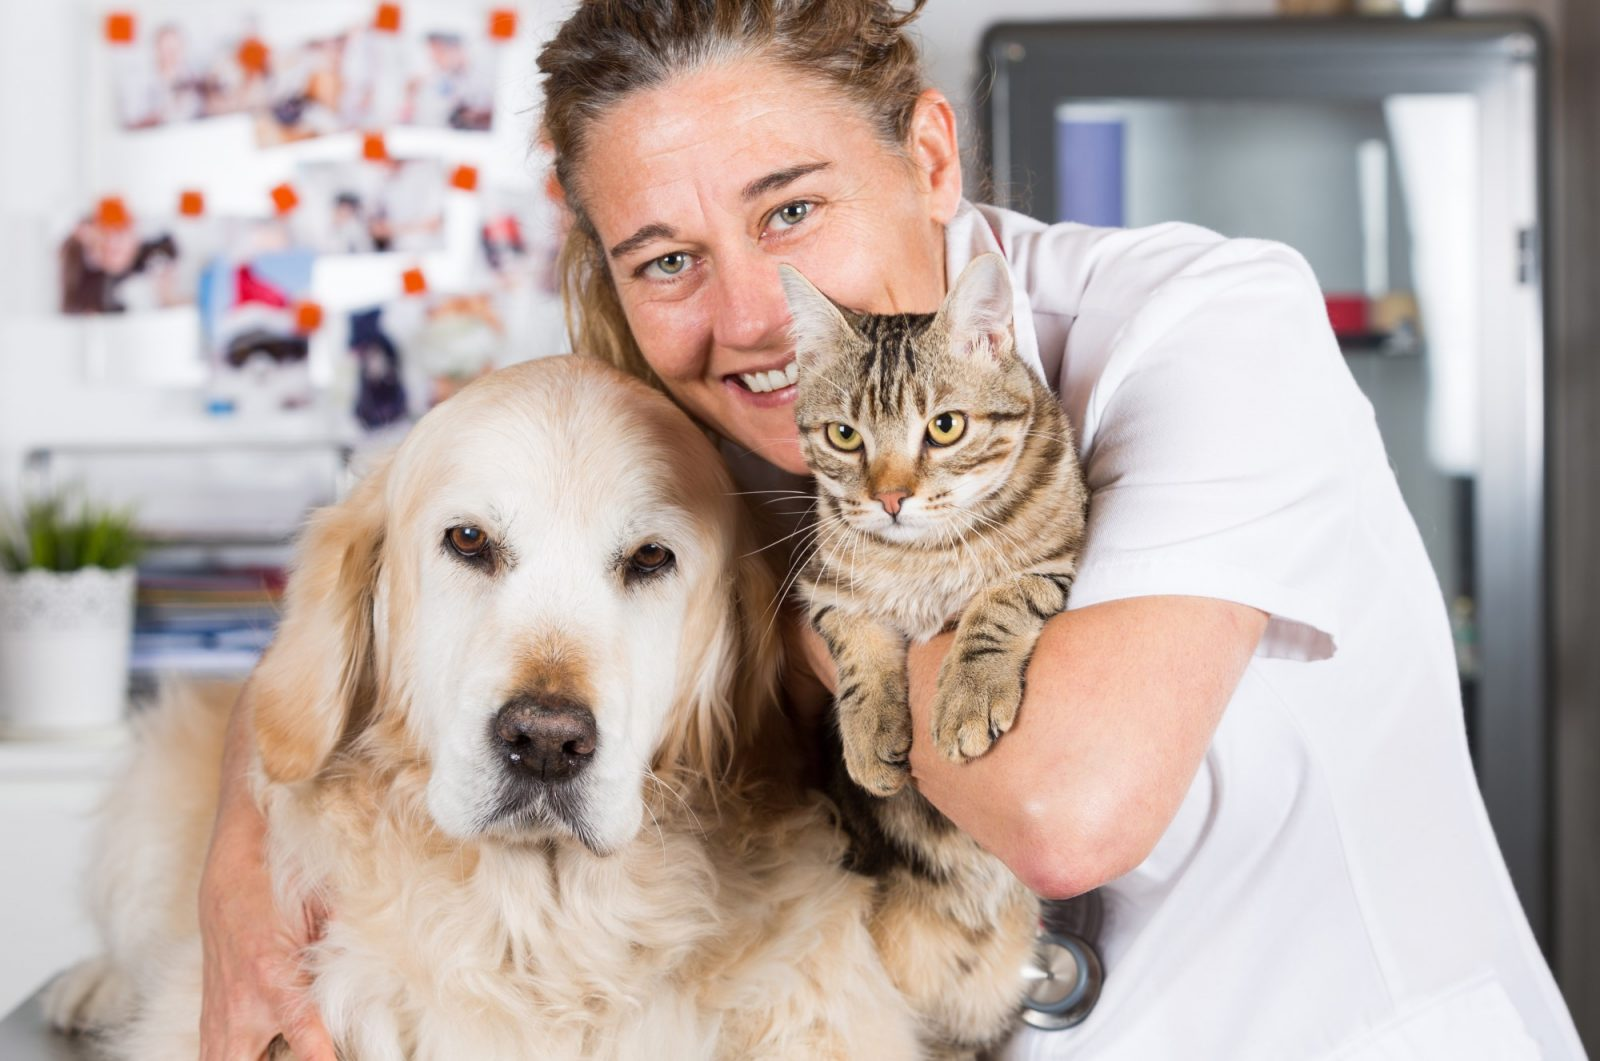 Veterinarian holding a dog and a cat